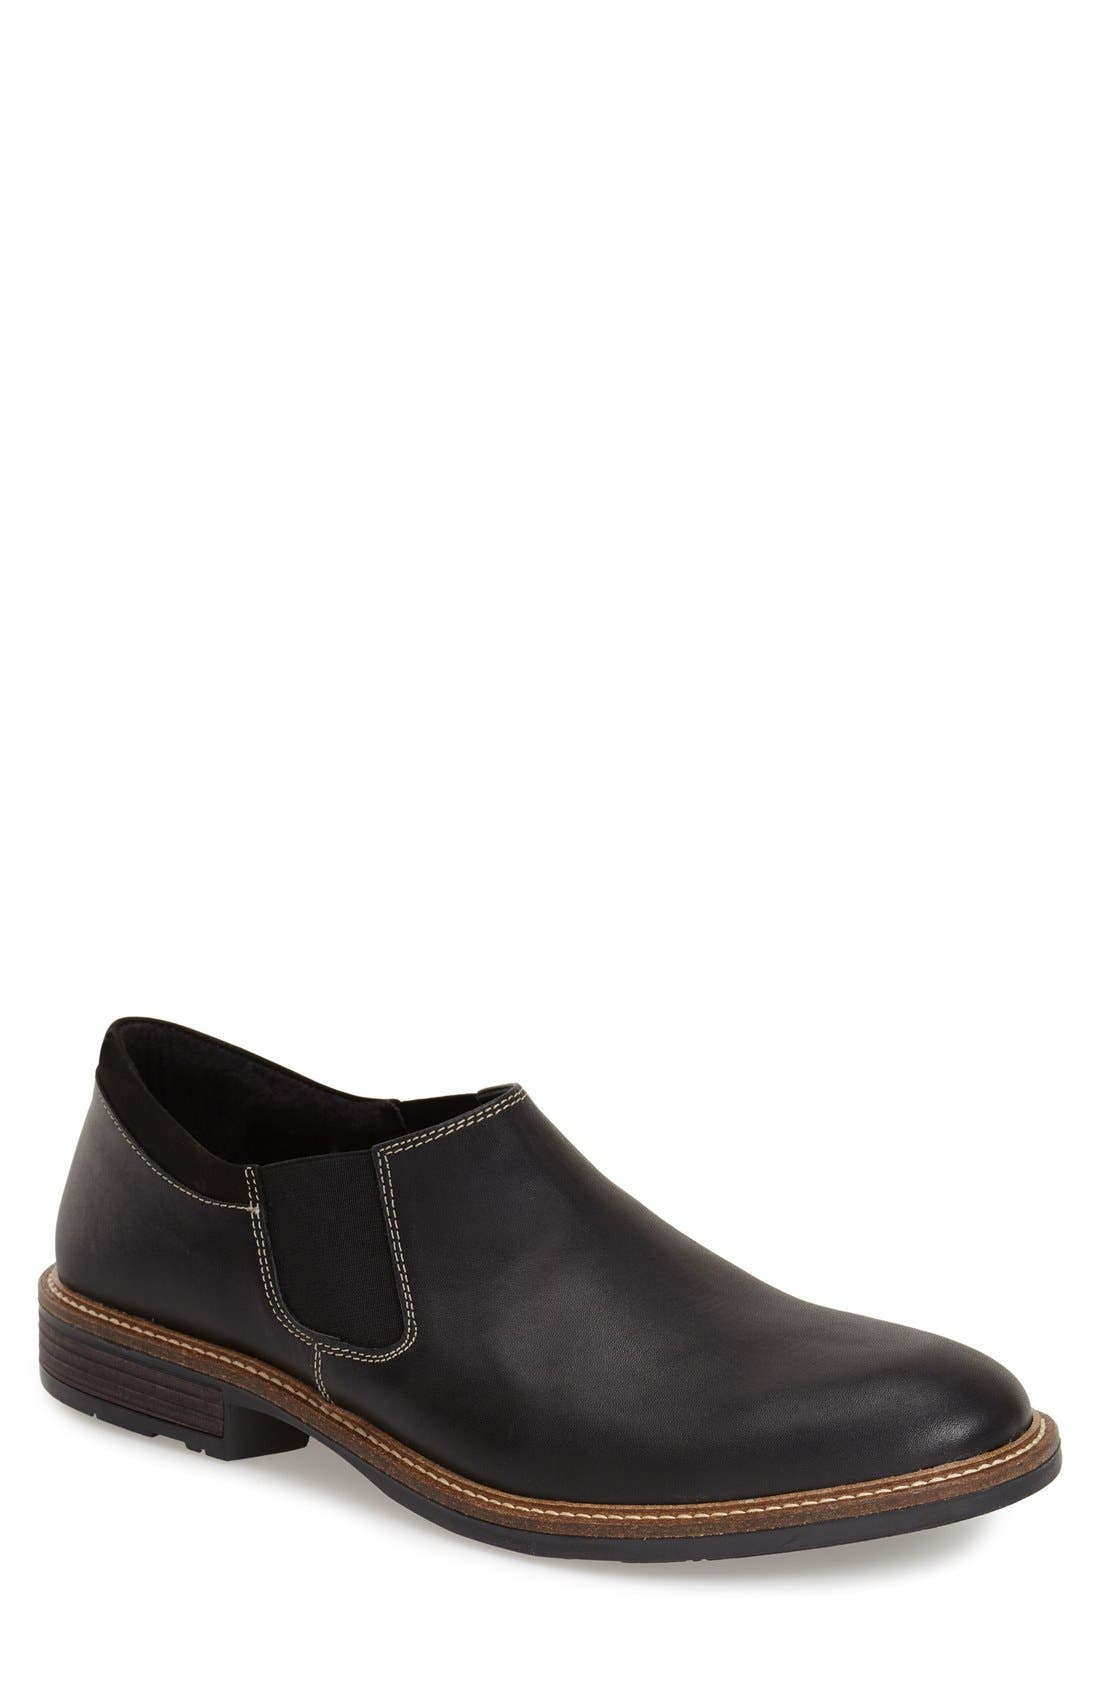 NAOT Director Venetian Loafer